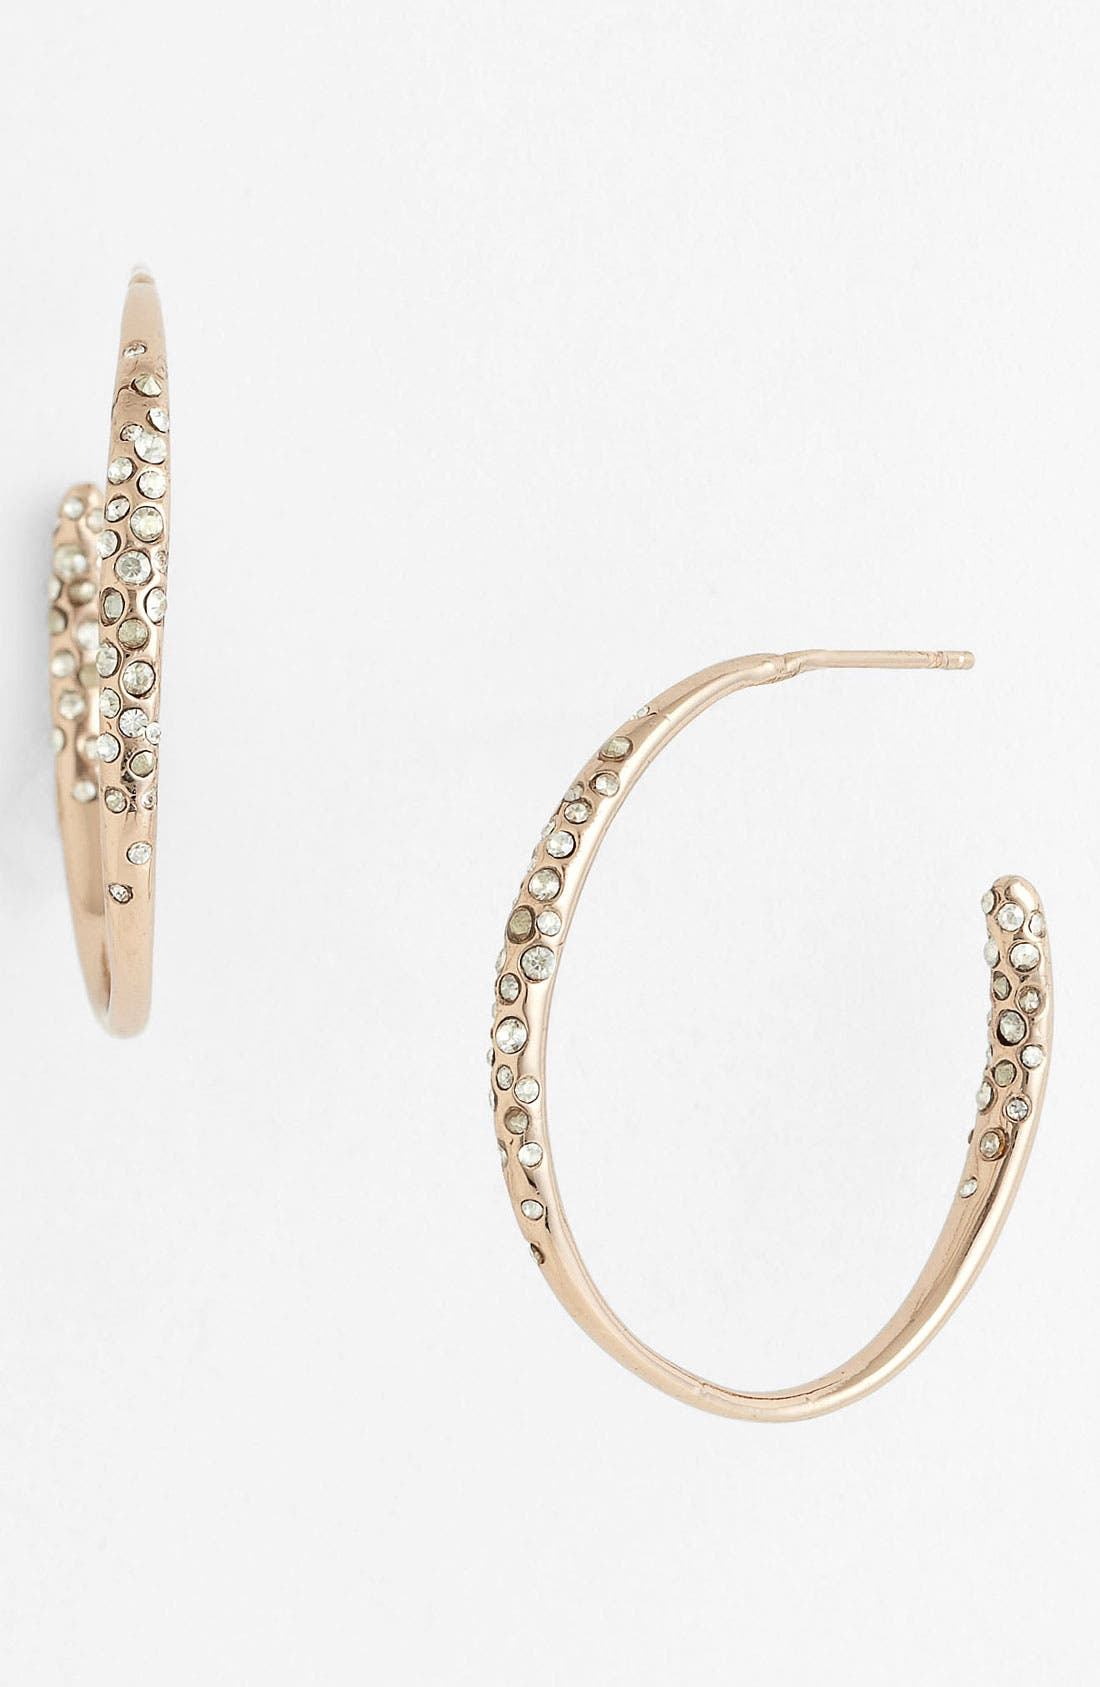 Main Image - Alexis Bittar 'Miss Havisham' Small Inside Out Hoop Earrings